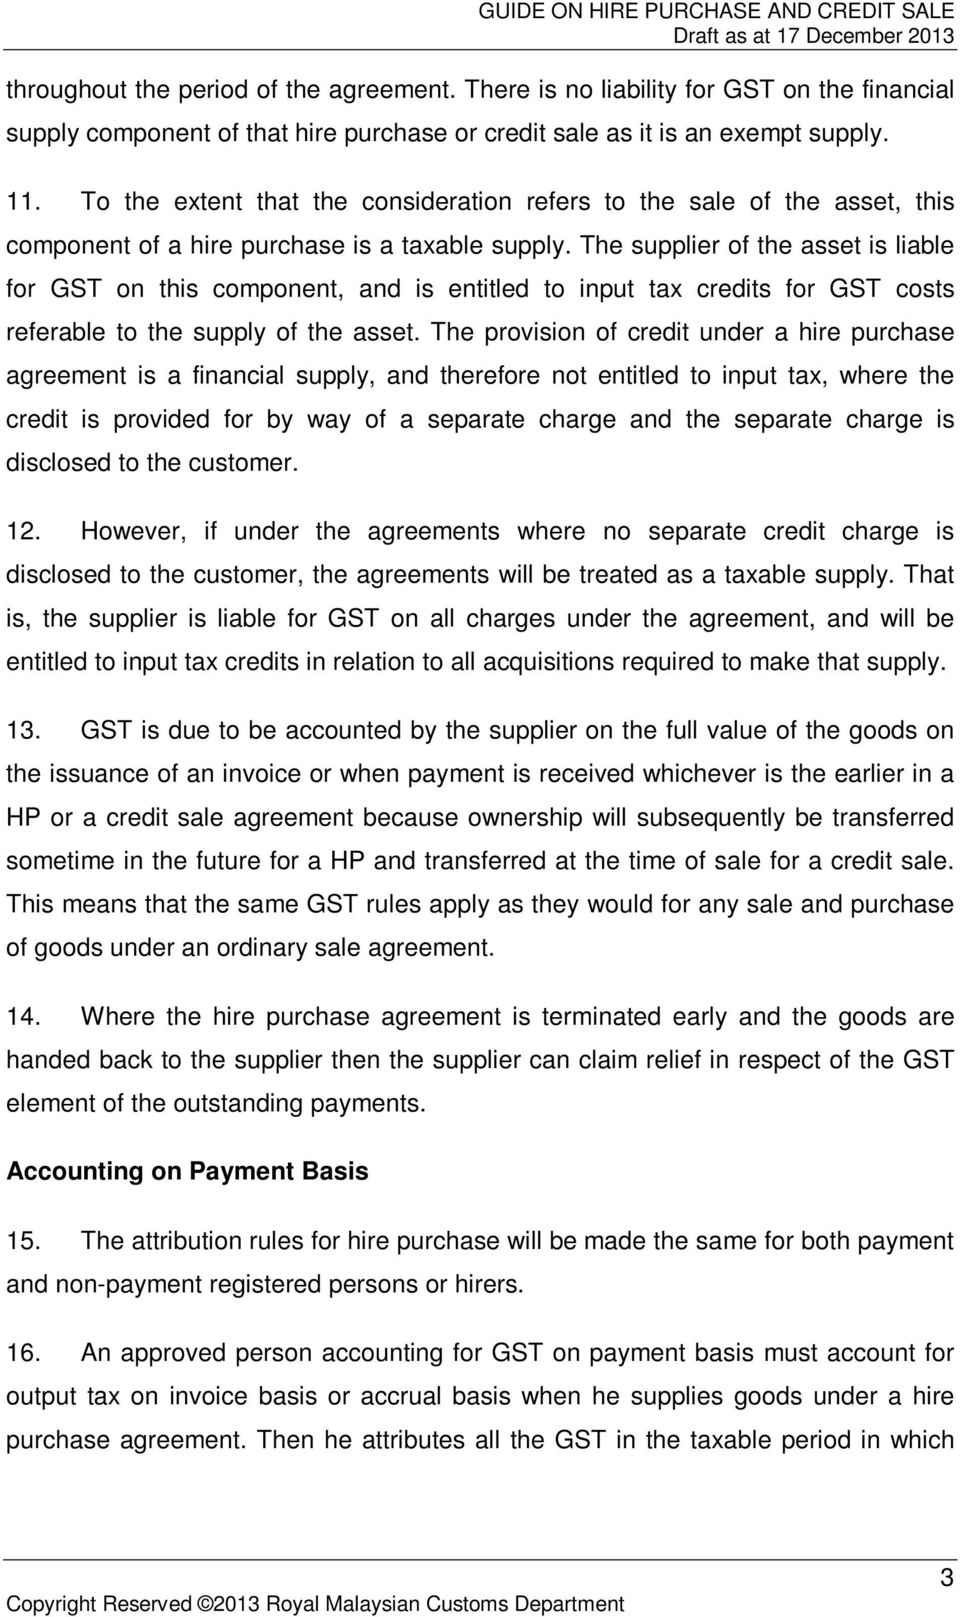 The supplier of the asset is liable for GST on this component, and is entitled to input tax credits for GST costs referable to the supply of the asset.